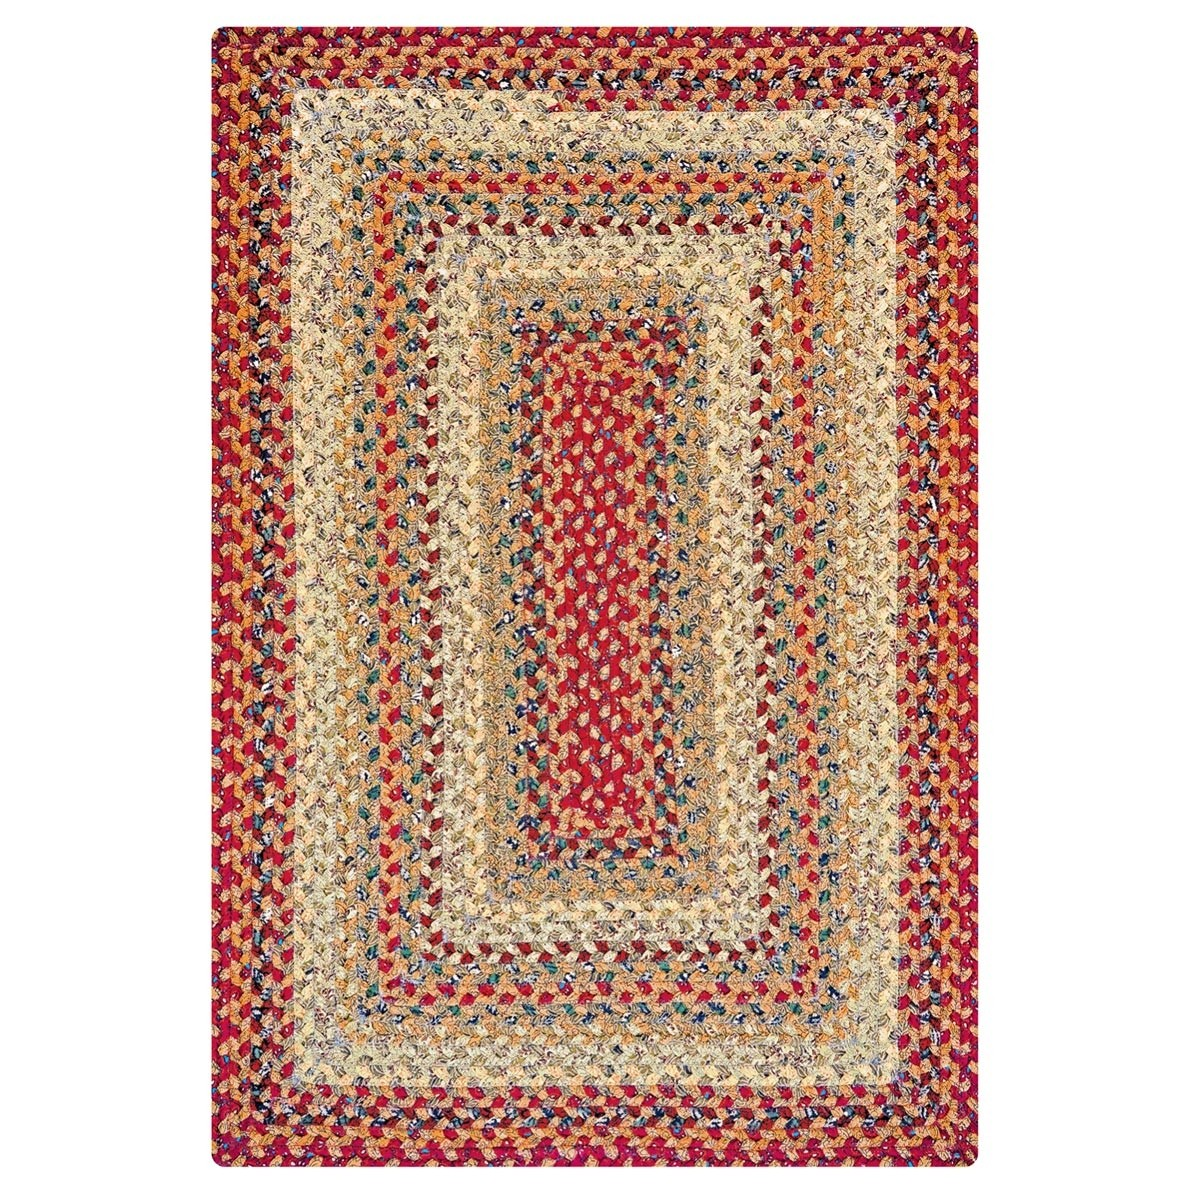 Braided Rug For Living Room: Pumpkin Pie Cotton Braided Rugs